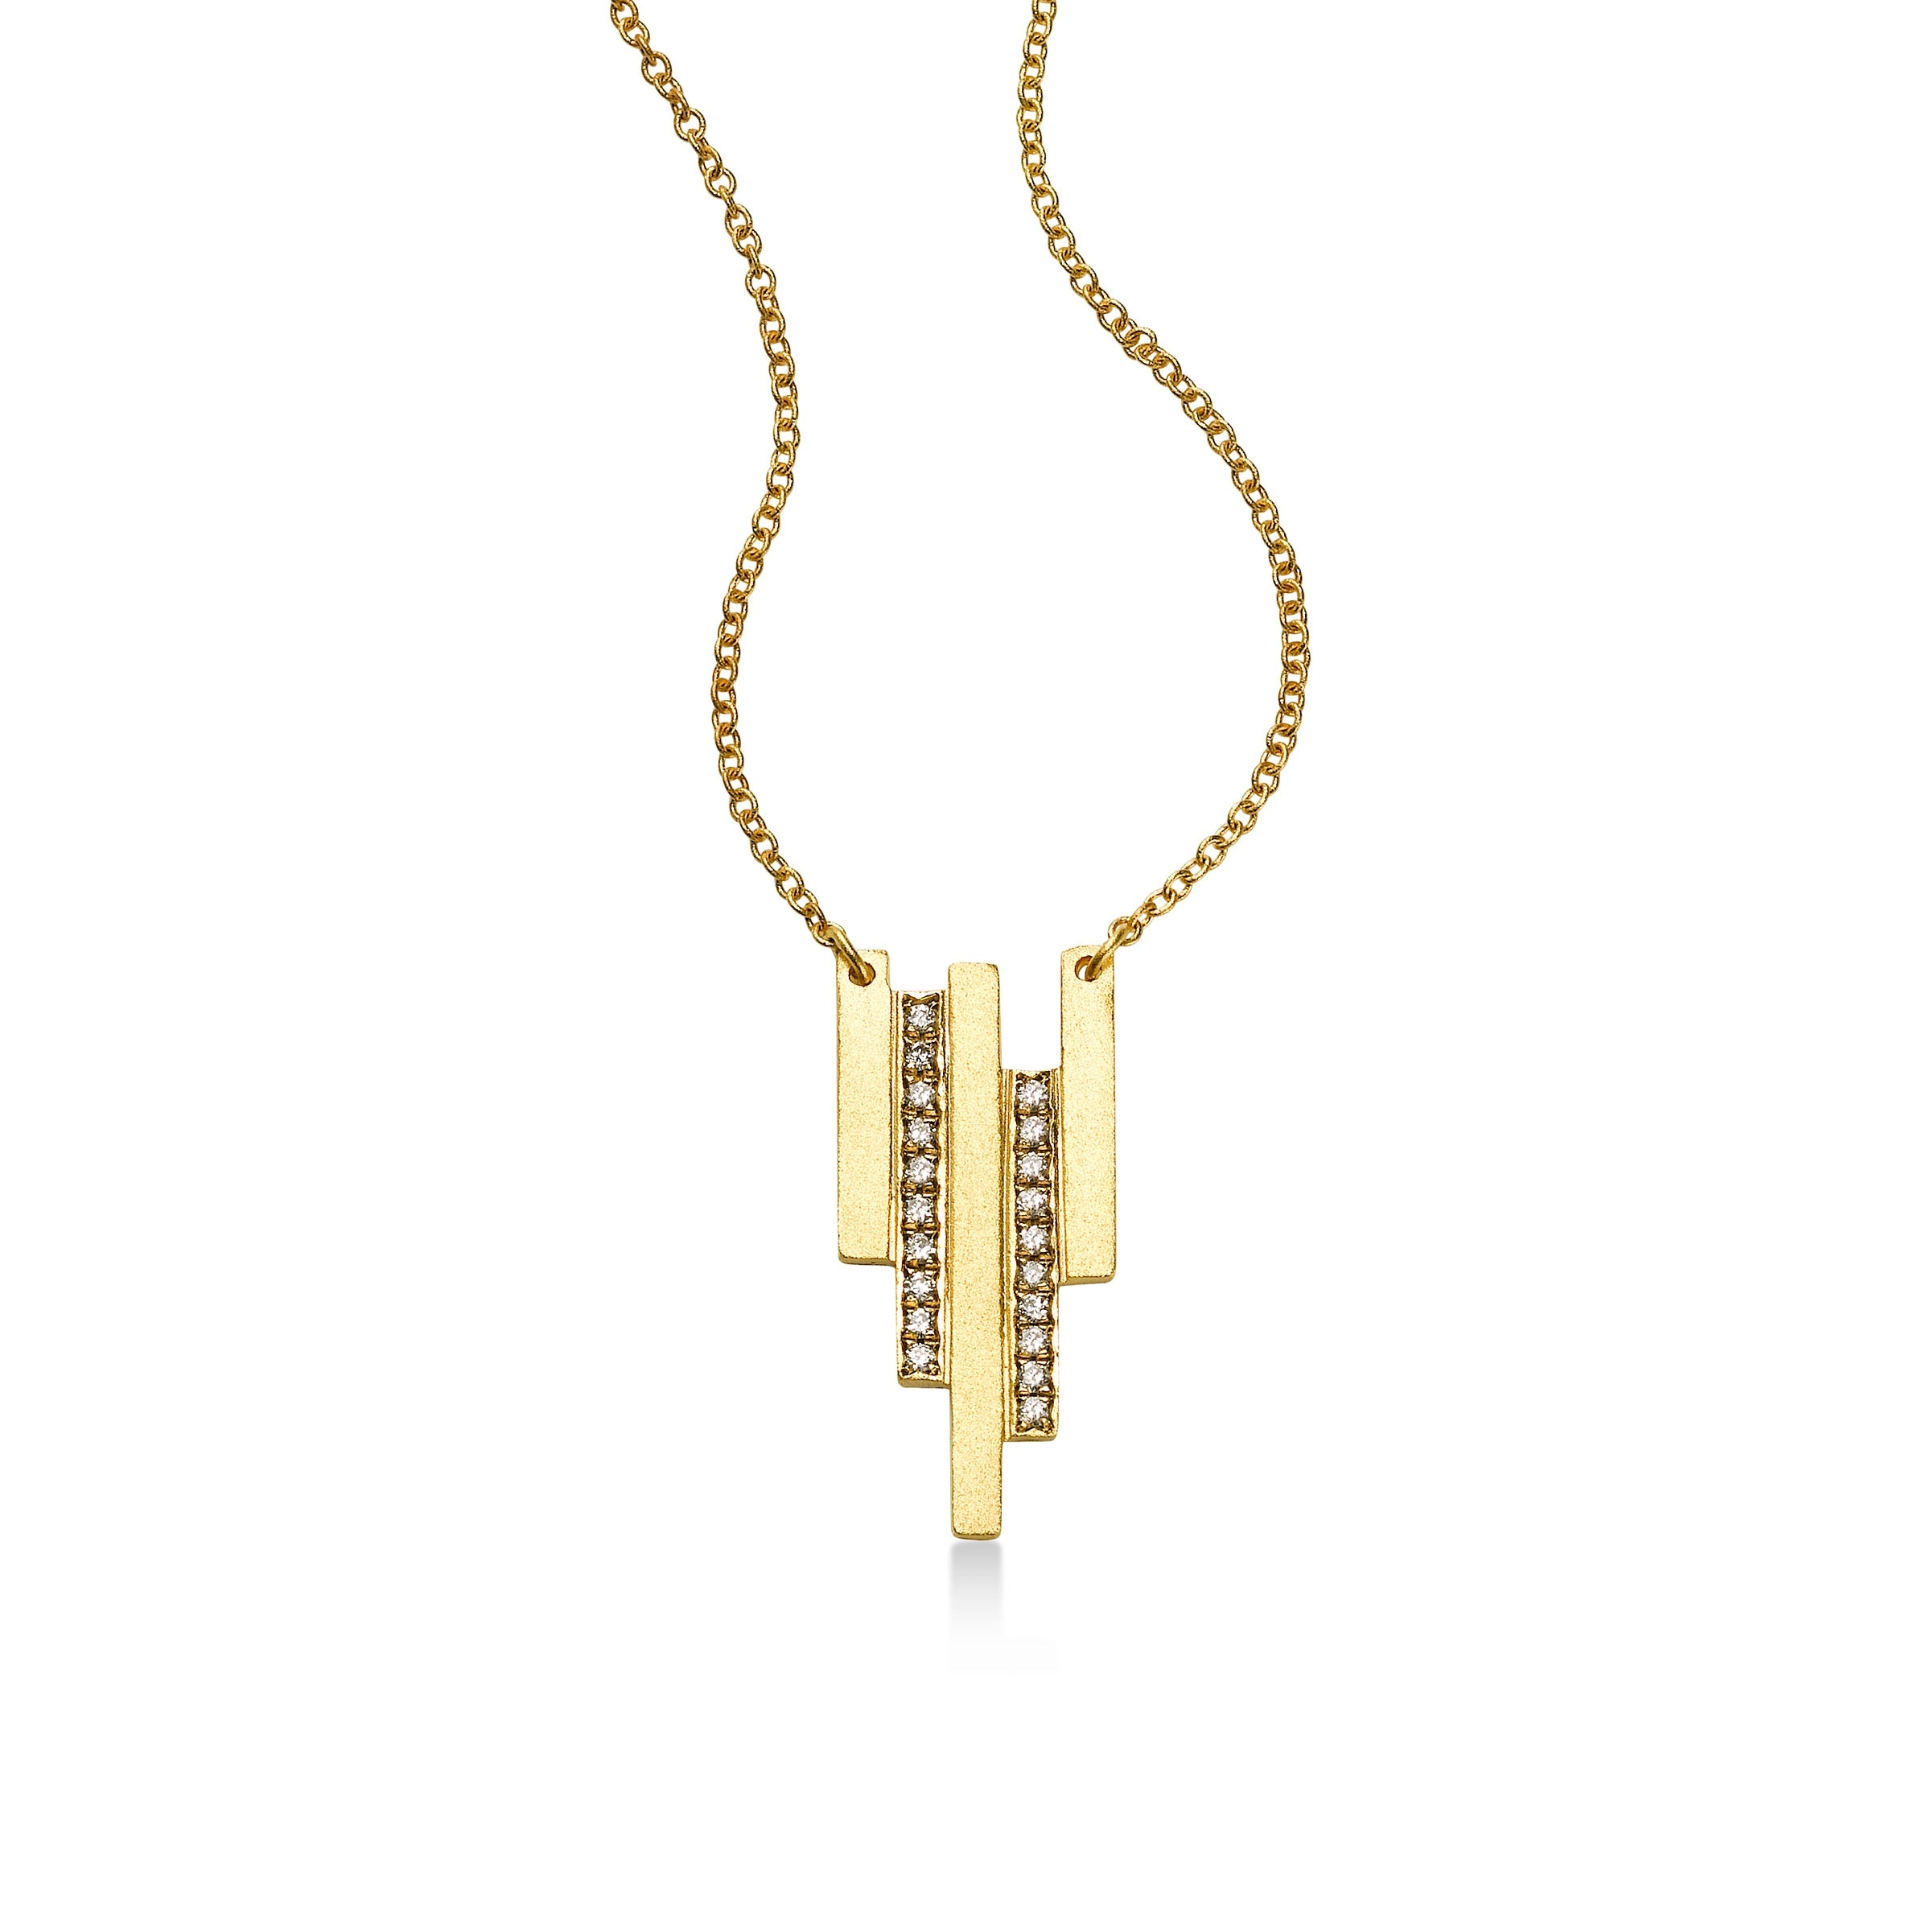 Deco Design Diamond Necklace, 14K Yellow Gold